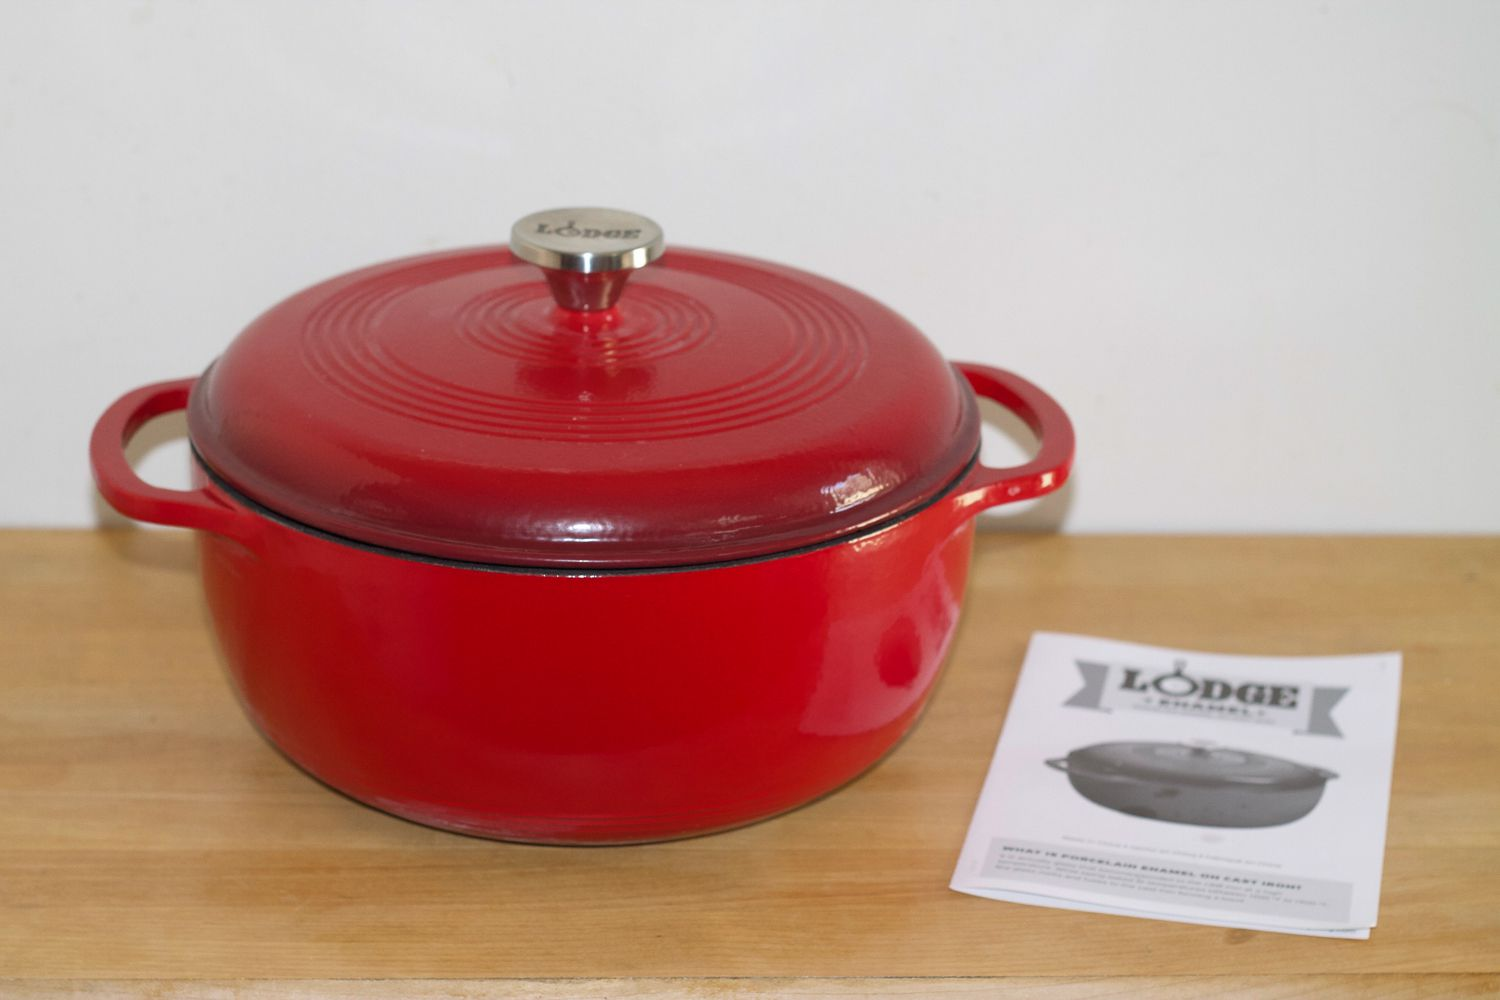 Lodge Enameled Cast Iron Dutch Oven Review High Quality Low Cost